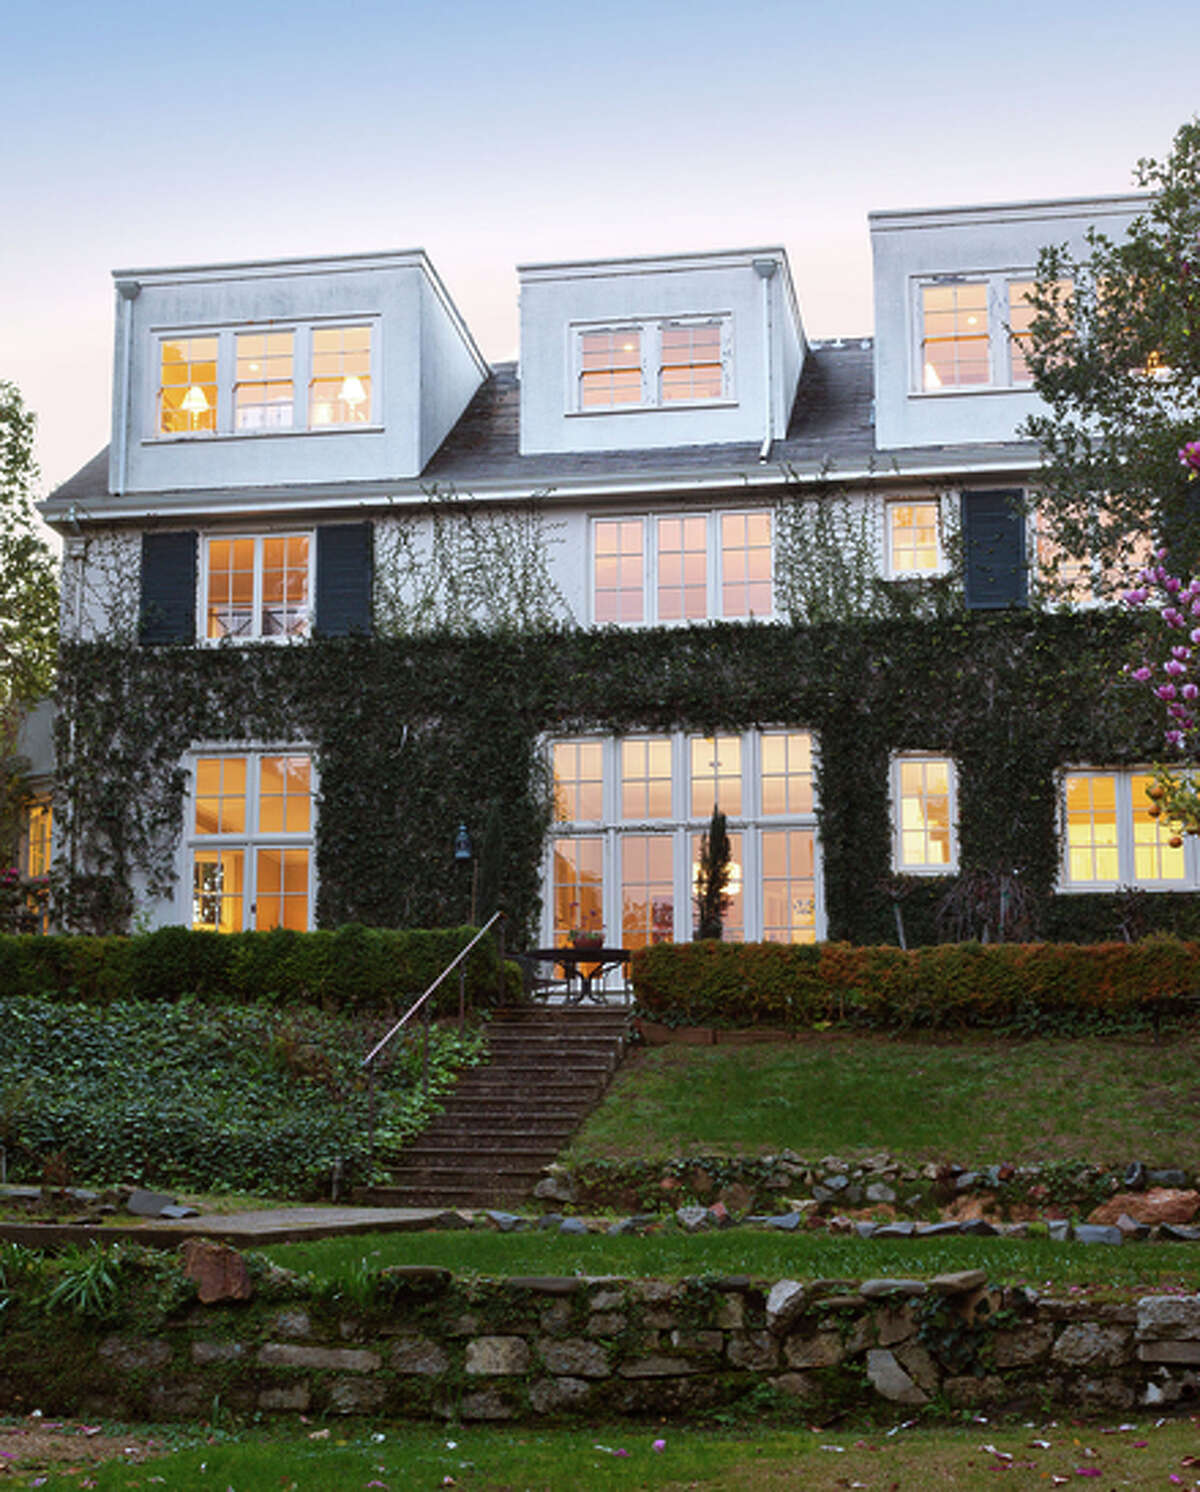 The Piedmont home's plantation shutters and divided light windows are visible from the terraced backyard.